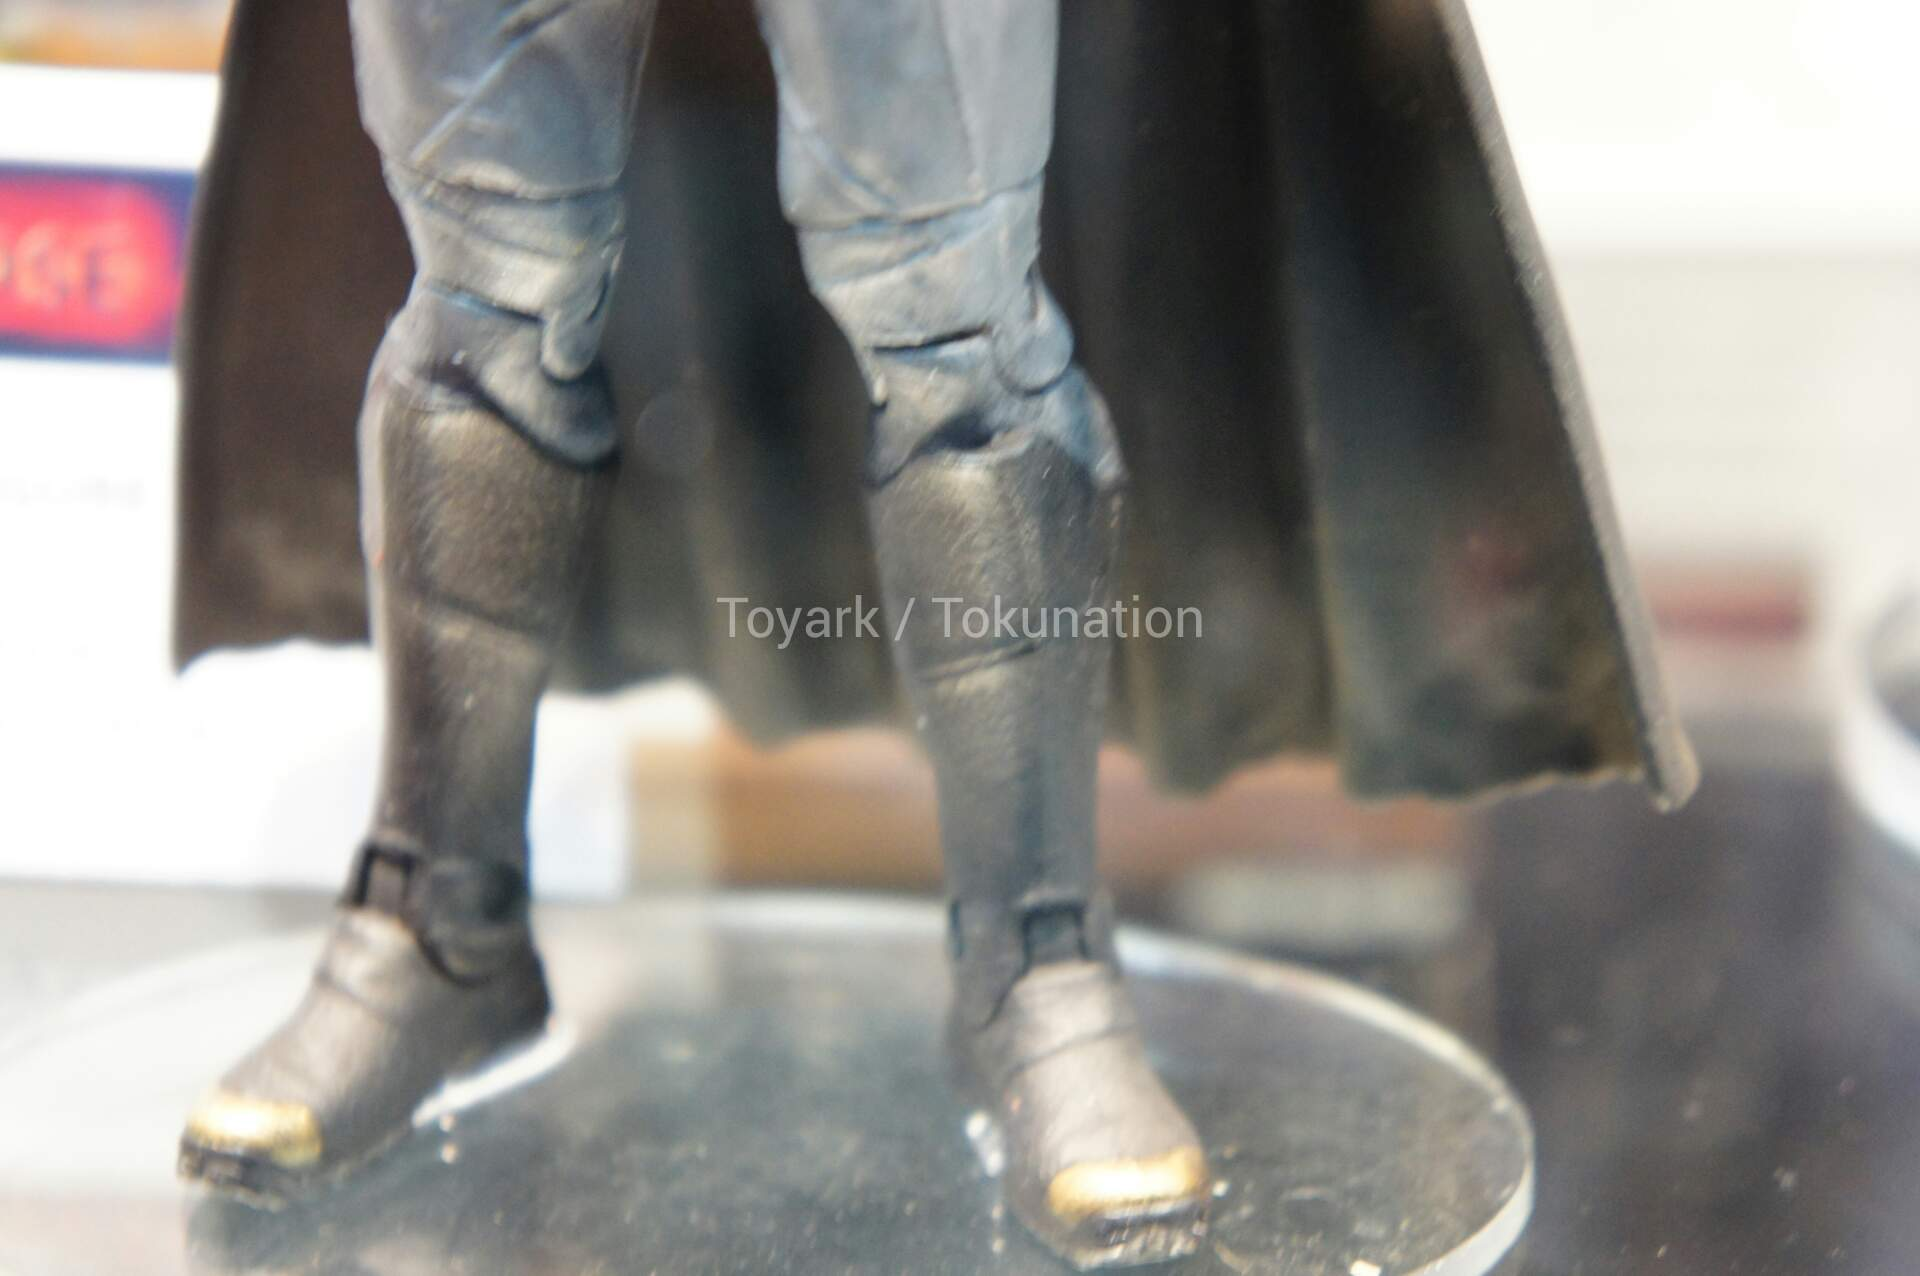 [CINEMA] [Tópico Oficial]Batman v. Superman - Barbara Gordon confirmada! - Página 7 SDCC2015-Mattel-Batman-v-Superman-103